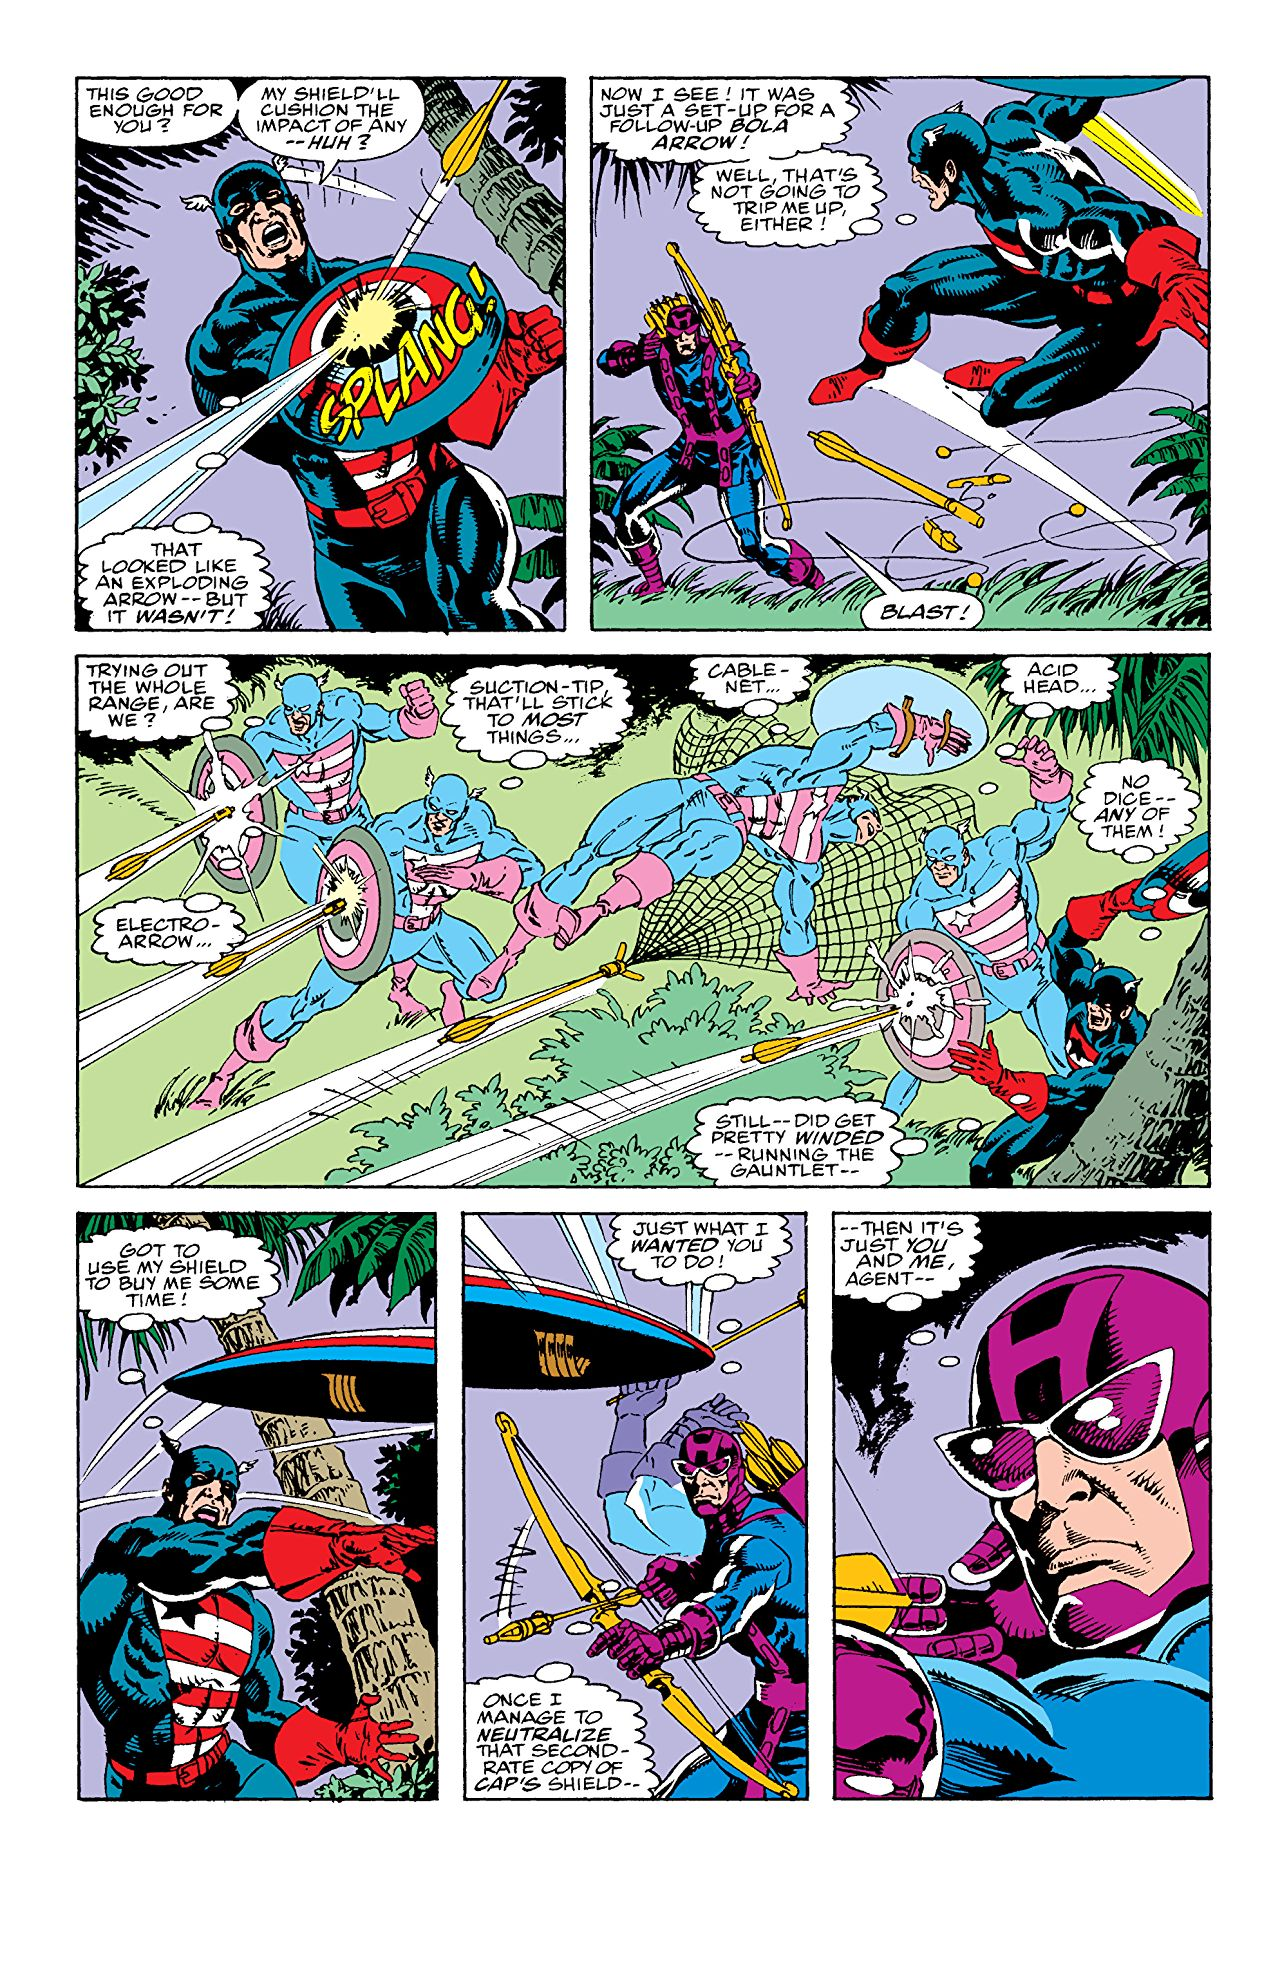 The infamous fight in  Avengers West Coast #69.